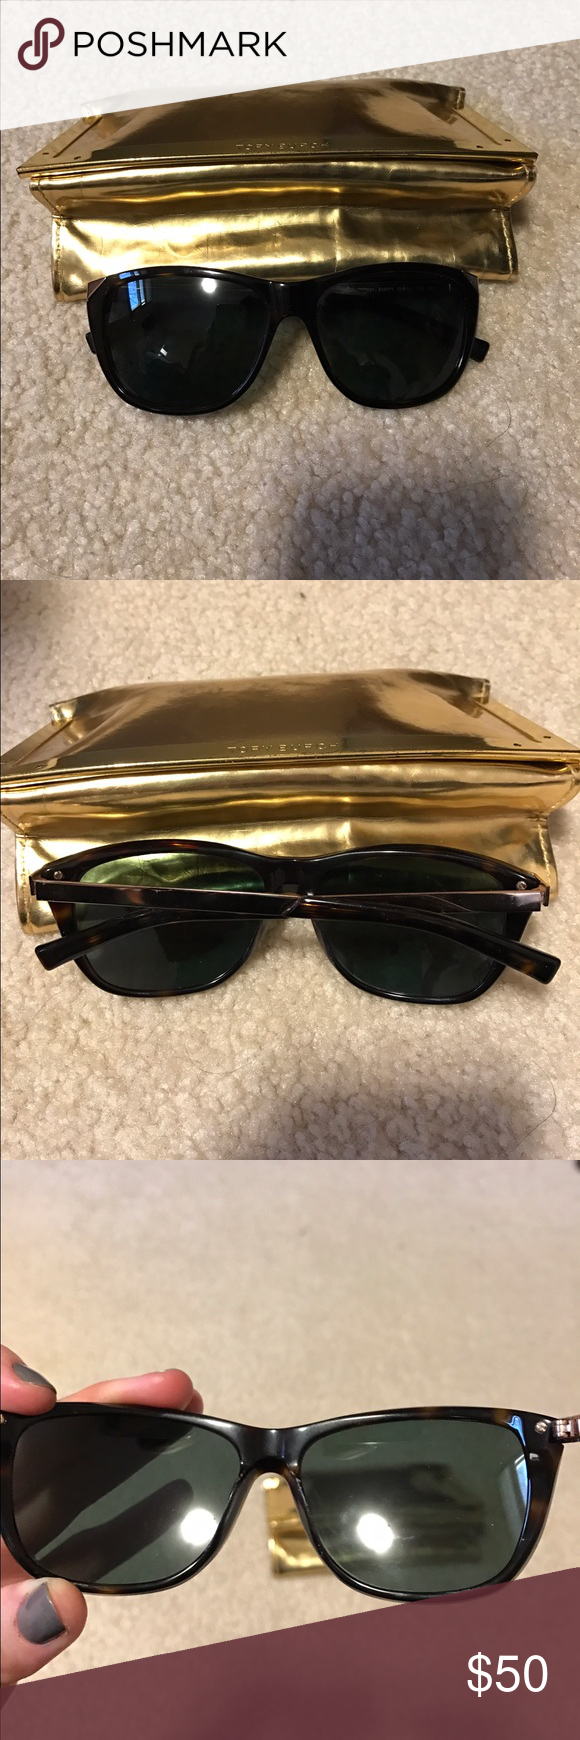 Tory Burch Wayfarer Sunglasses Good condition sunglasses, only worn for a few months. Comes with case. Tory Burch Accessories Sunglasses